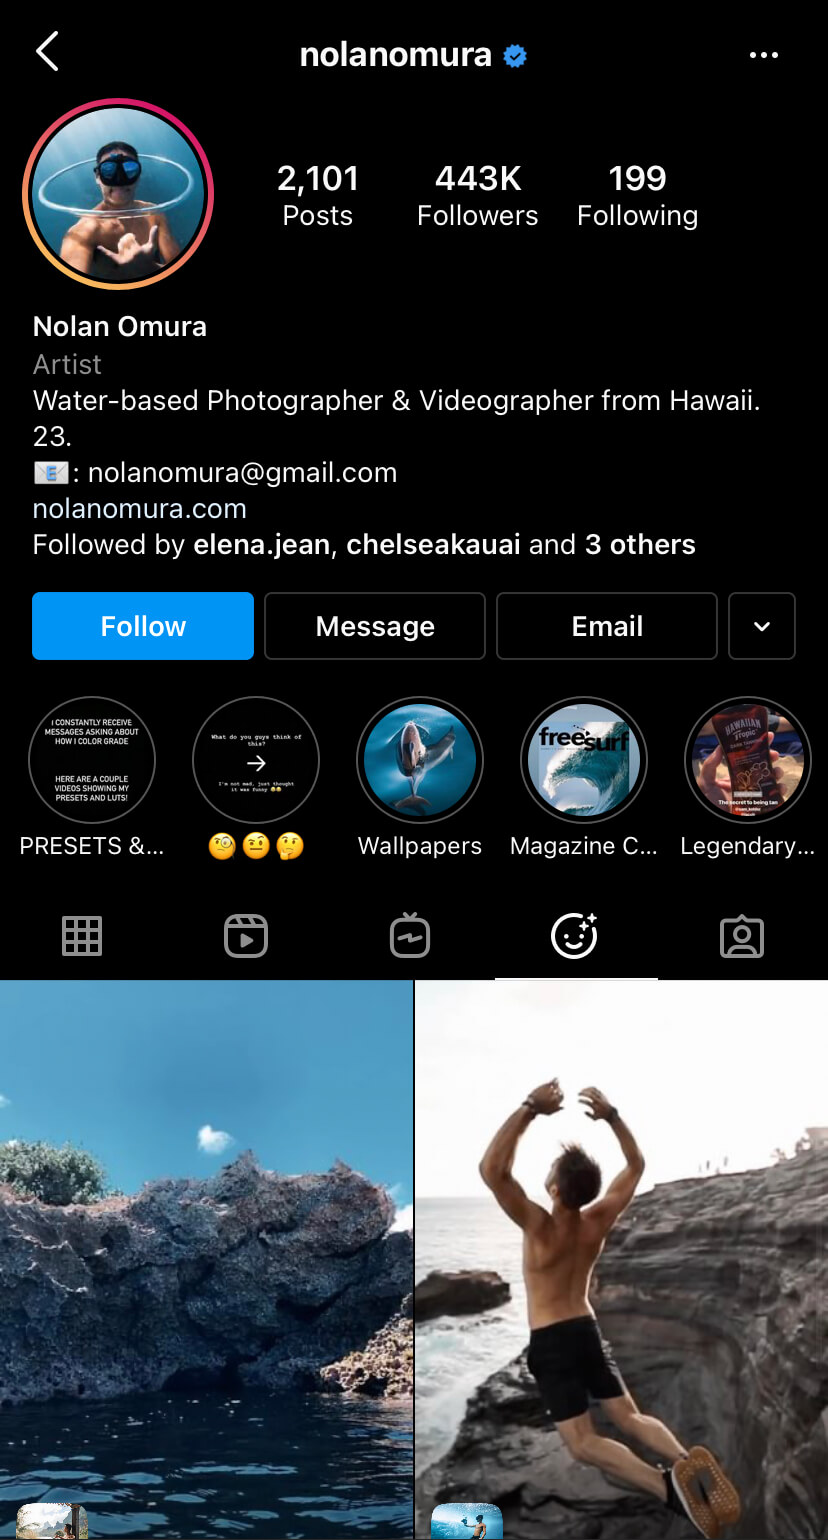 nolanomura Instagram profile custom camera effects